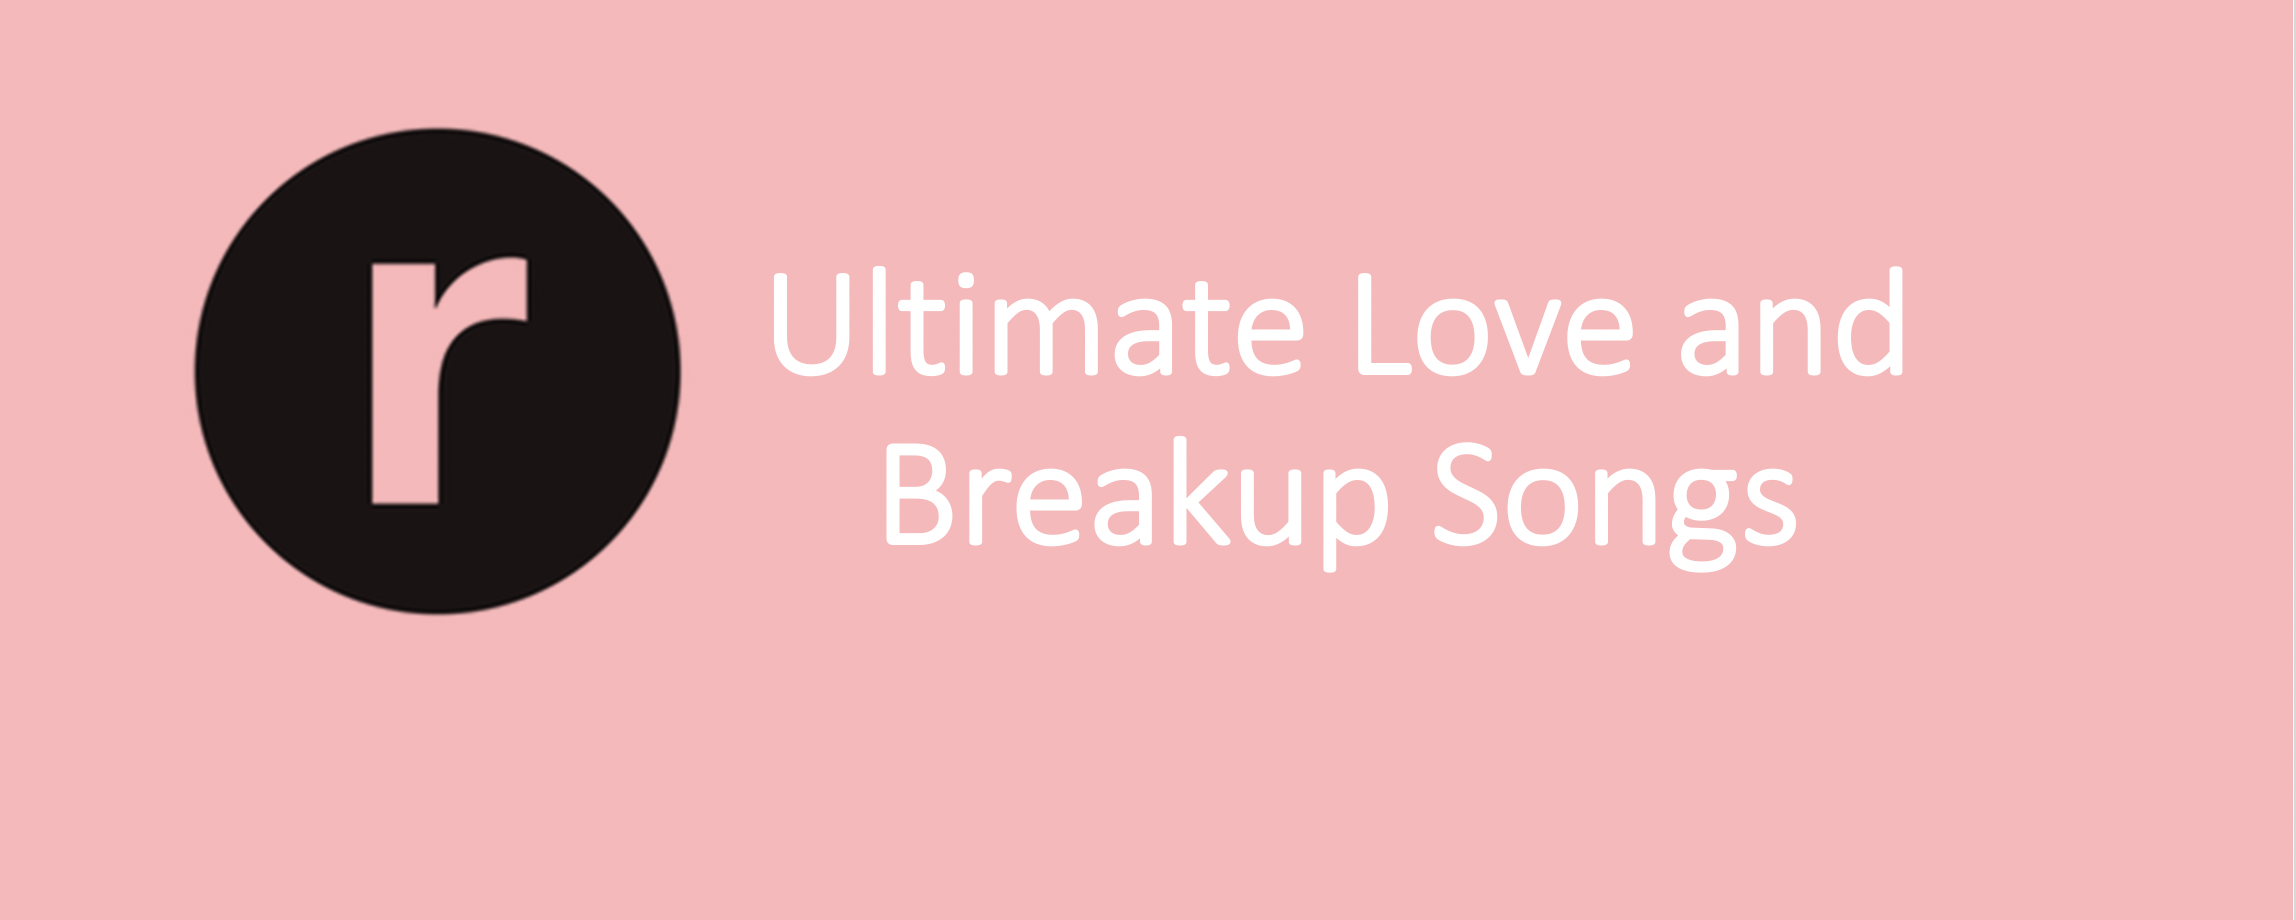 Break up song pink The 50